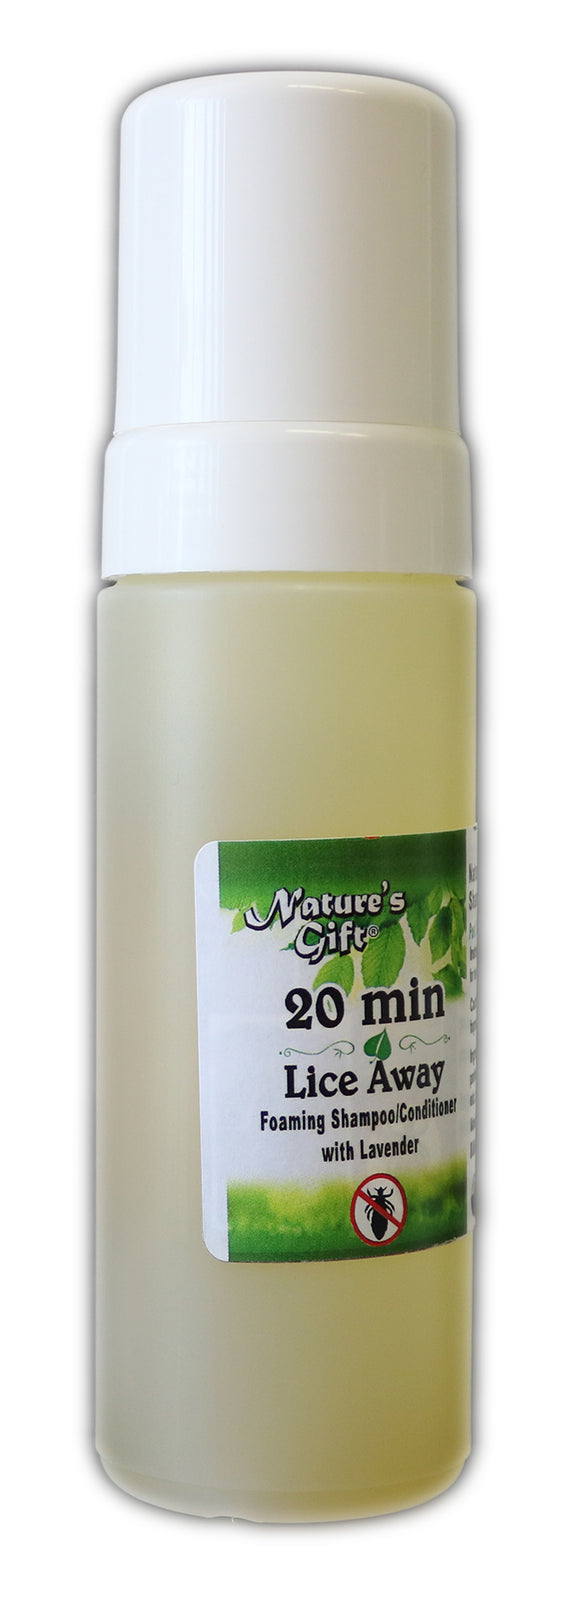 Nature's Gift® 20 Minute Lice Away 6oz Foaming Shampoo